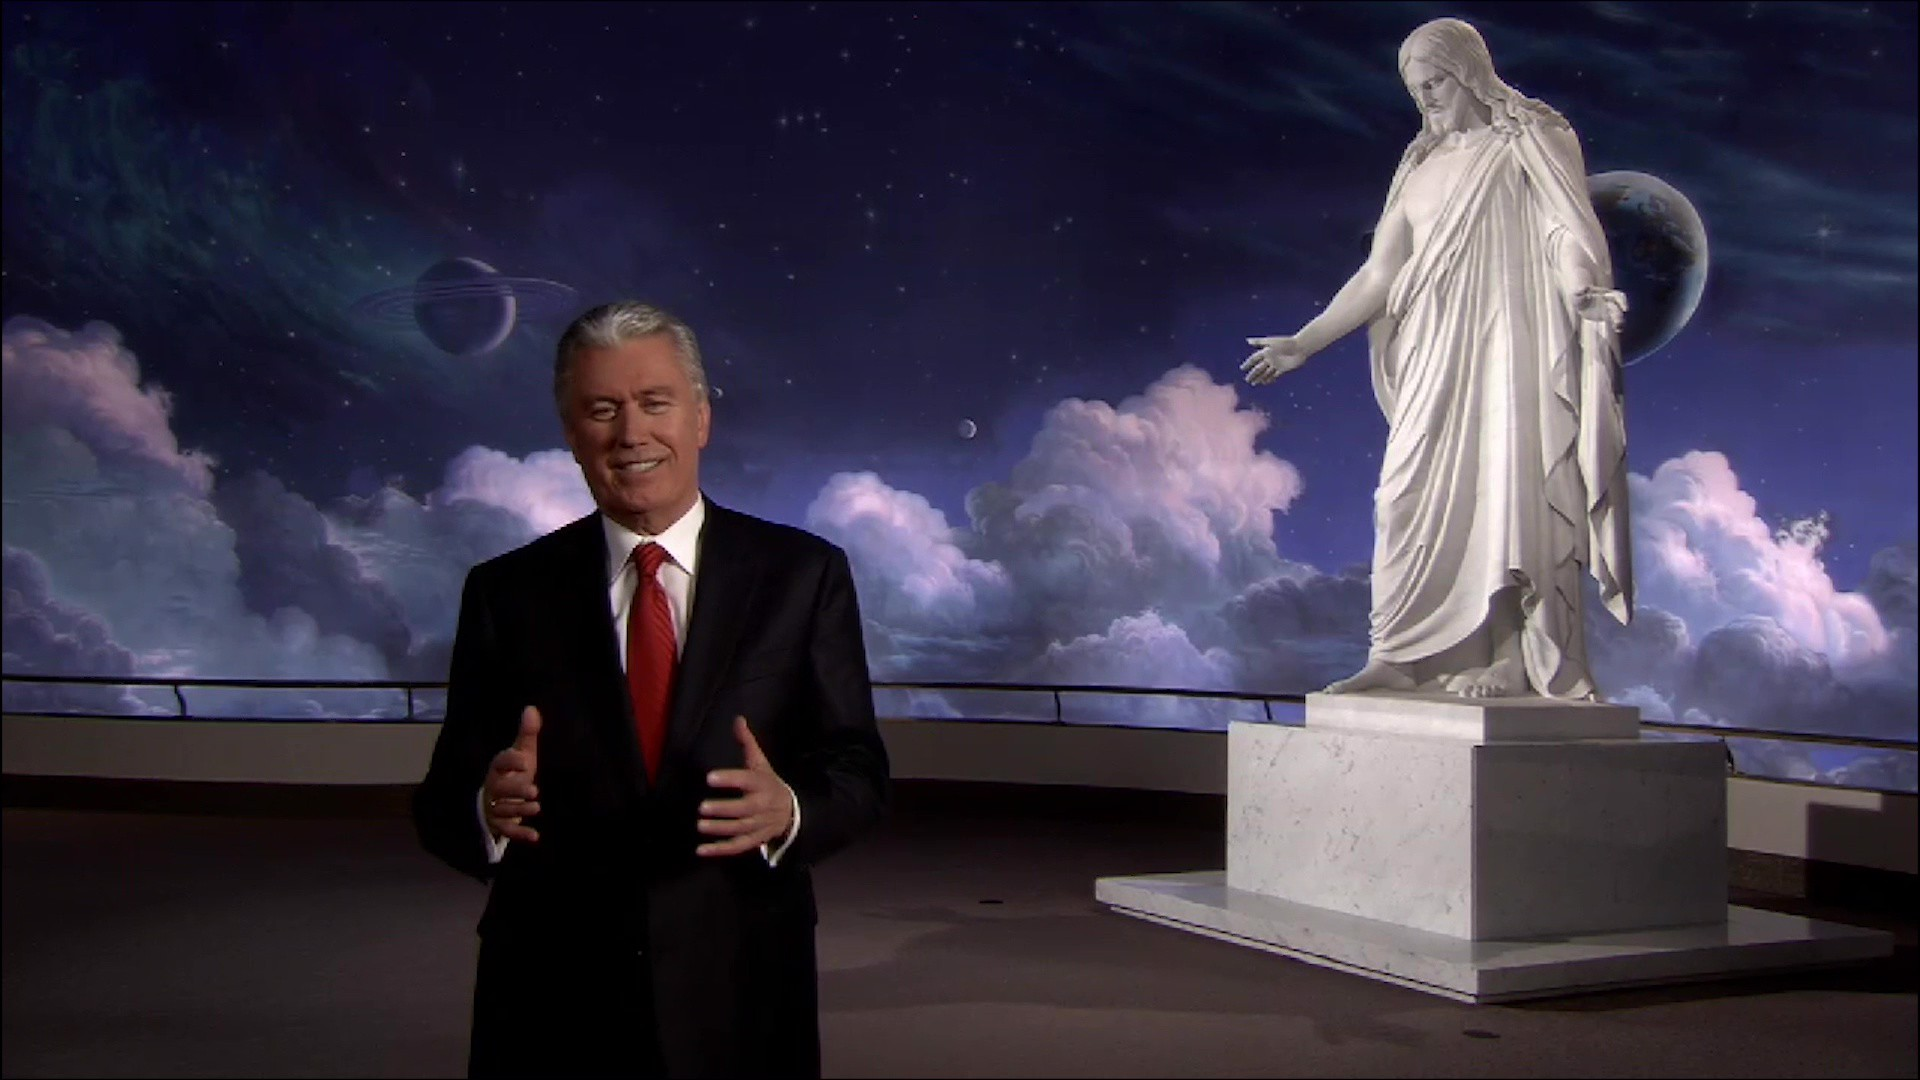 Elder Dieter F. Uchtdorf bears his testimony of the Son of the Living God, the Creator, and Savior of the World.